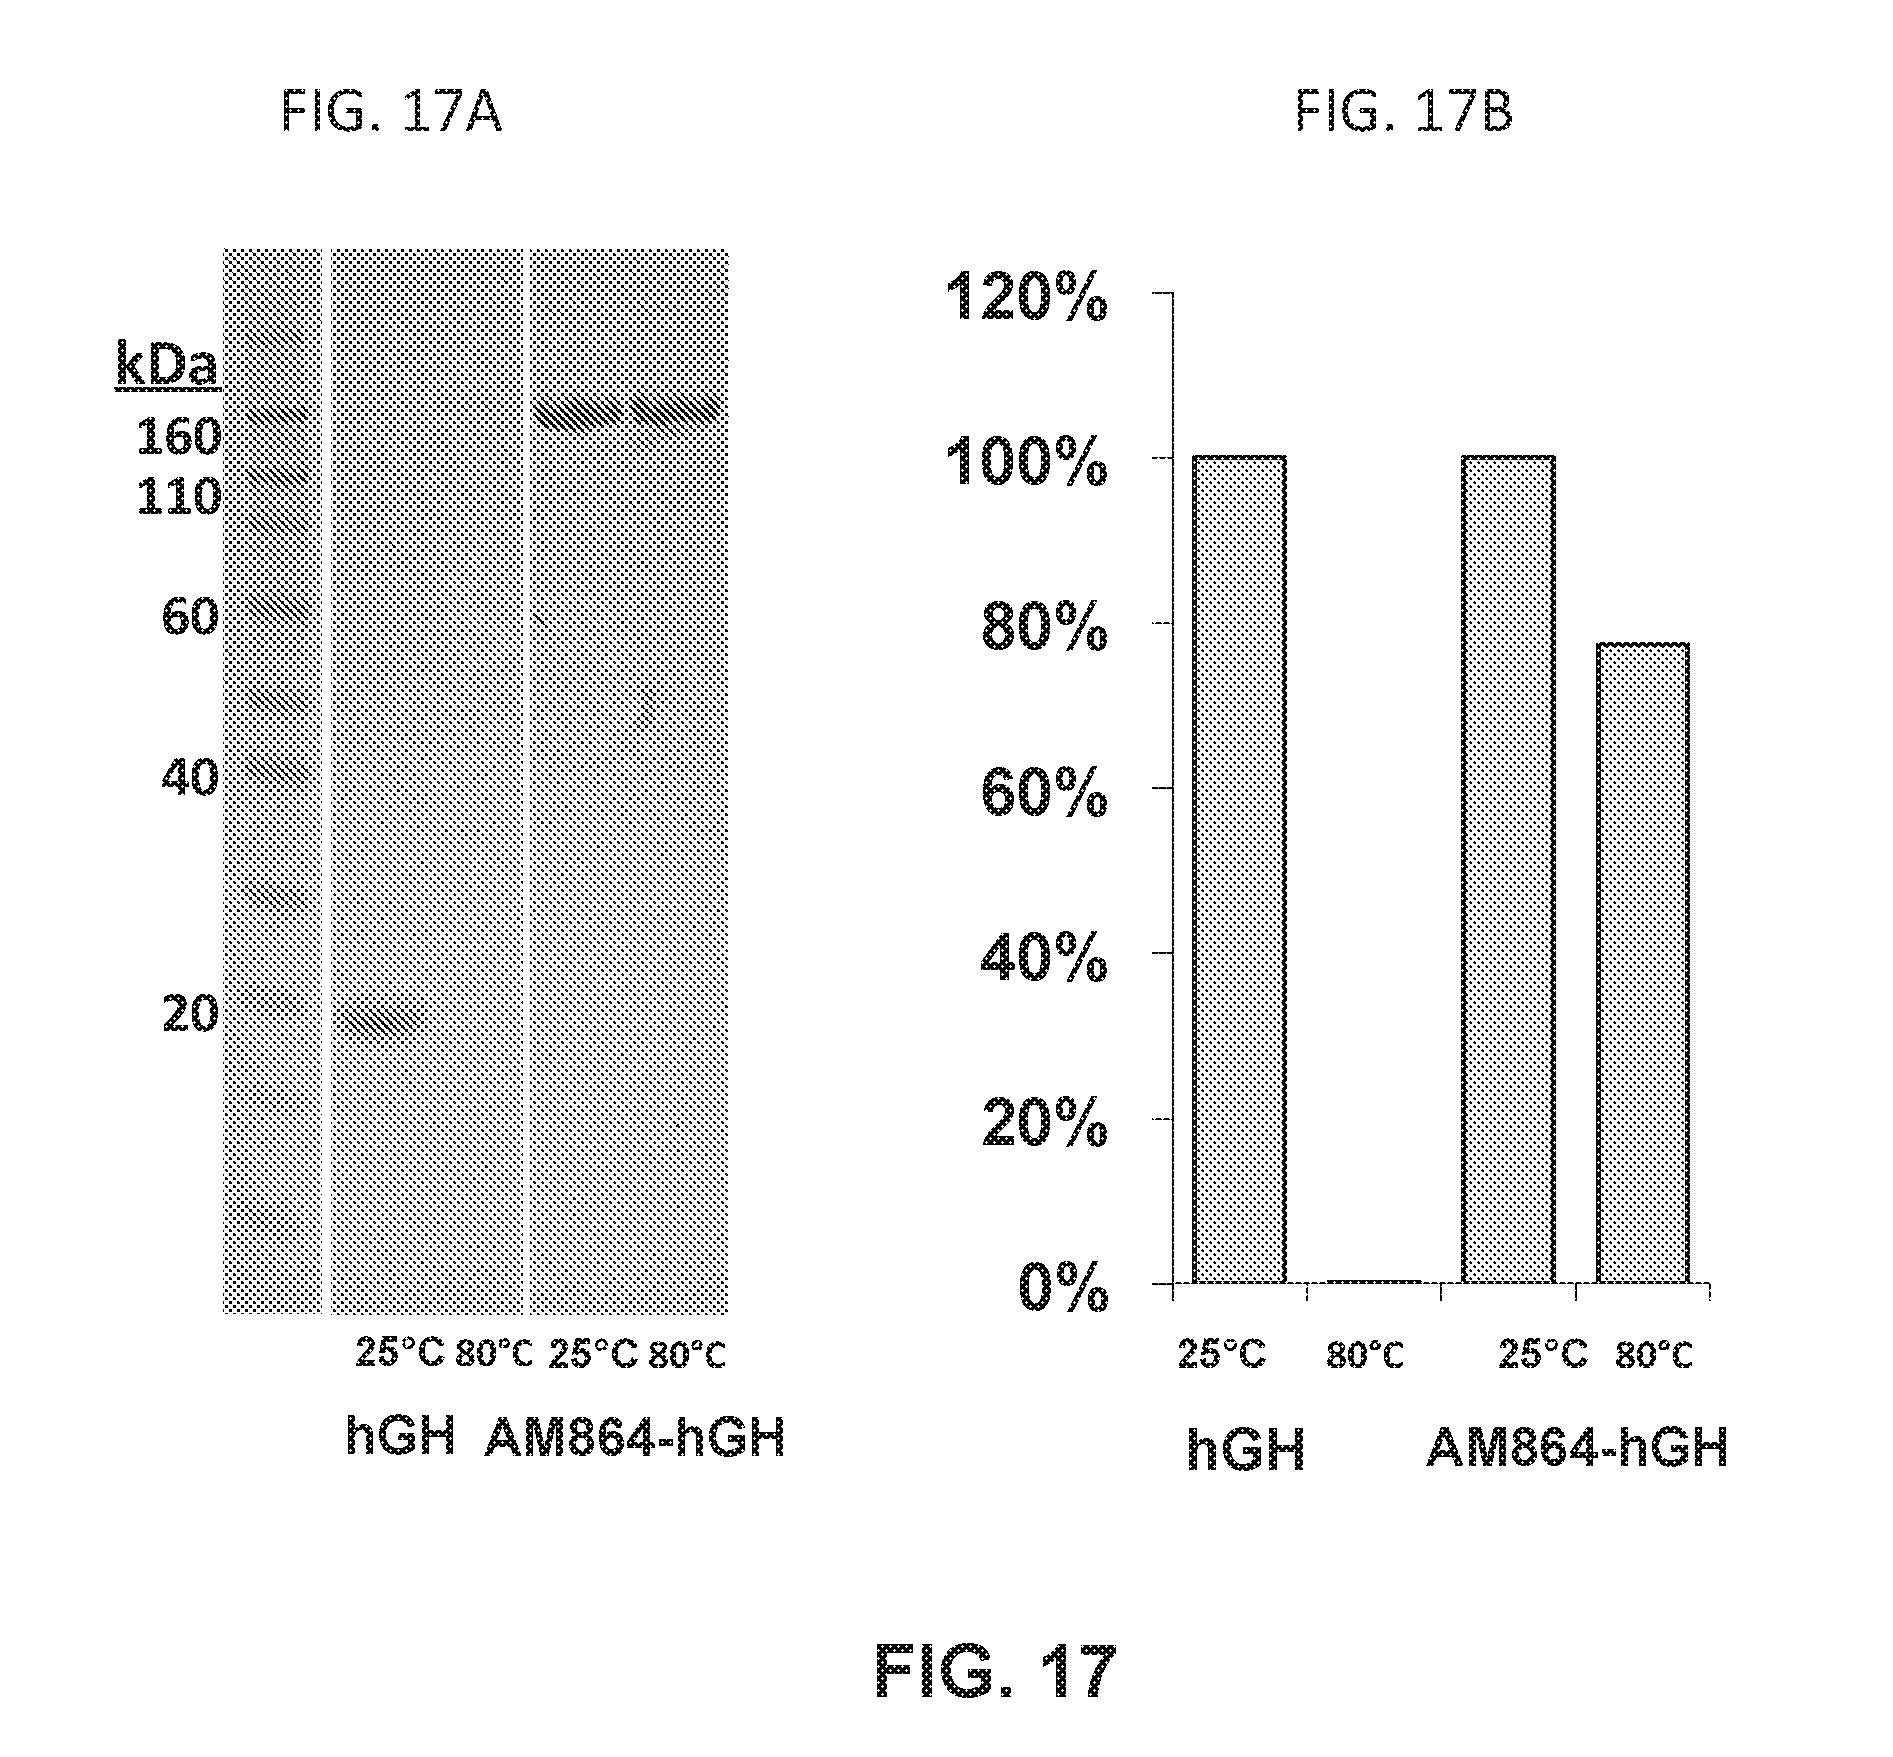 US20180161443A1 - Growth hormone polypeptides and methods of making